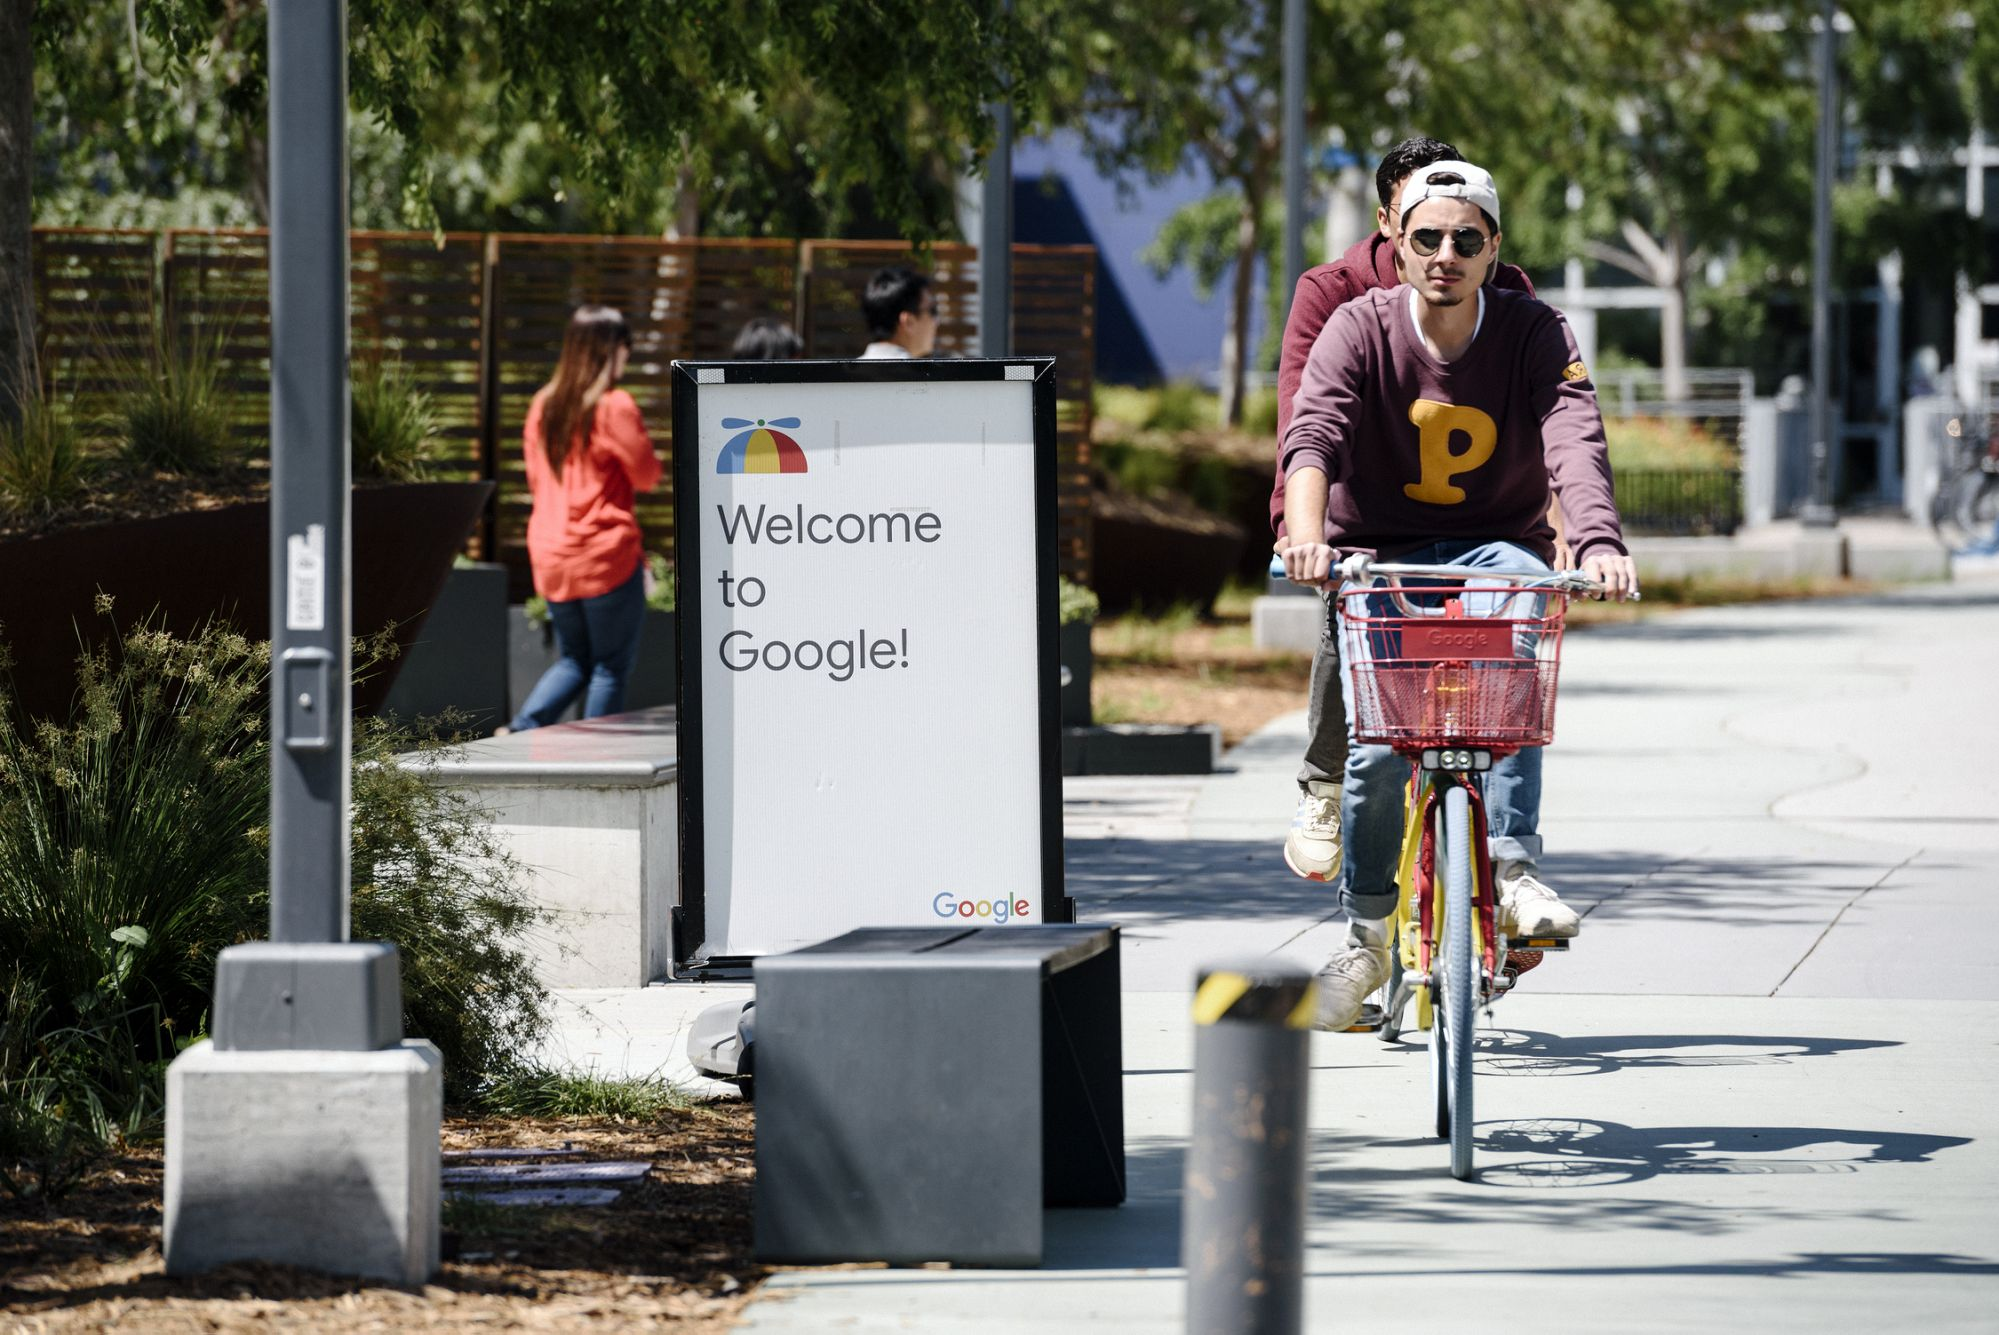 MOUNTAIN VIEW, CA - MAY 01: People ride bikes past signage on the Google campus as Google workers inside hold a sit-in to protest sexual harassment at the company, on May 1, 2019 in Mountain View, California. (Photo by Michael Short/Getty Images)